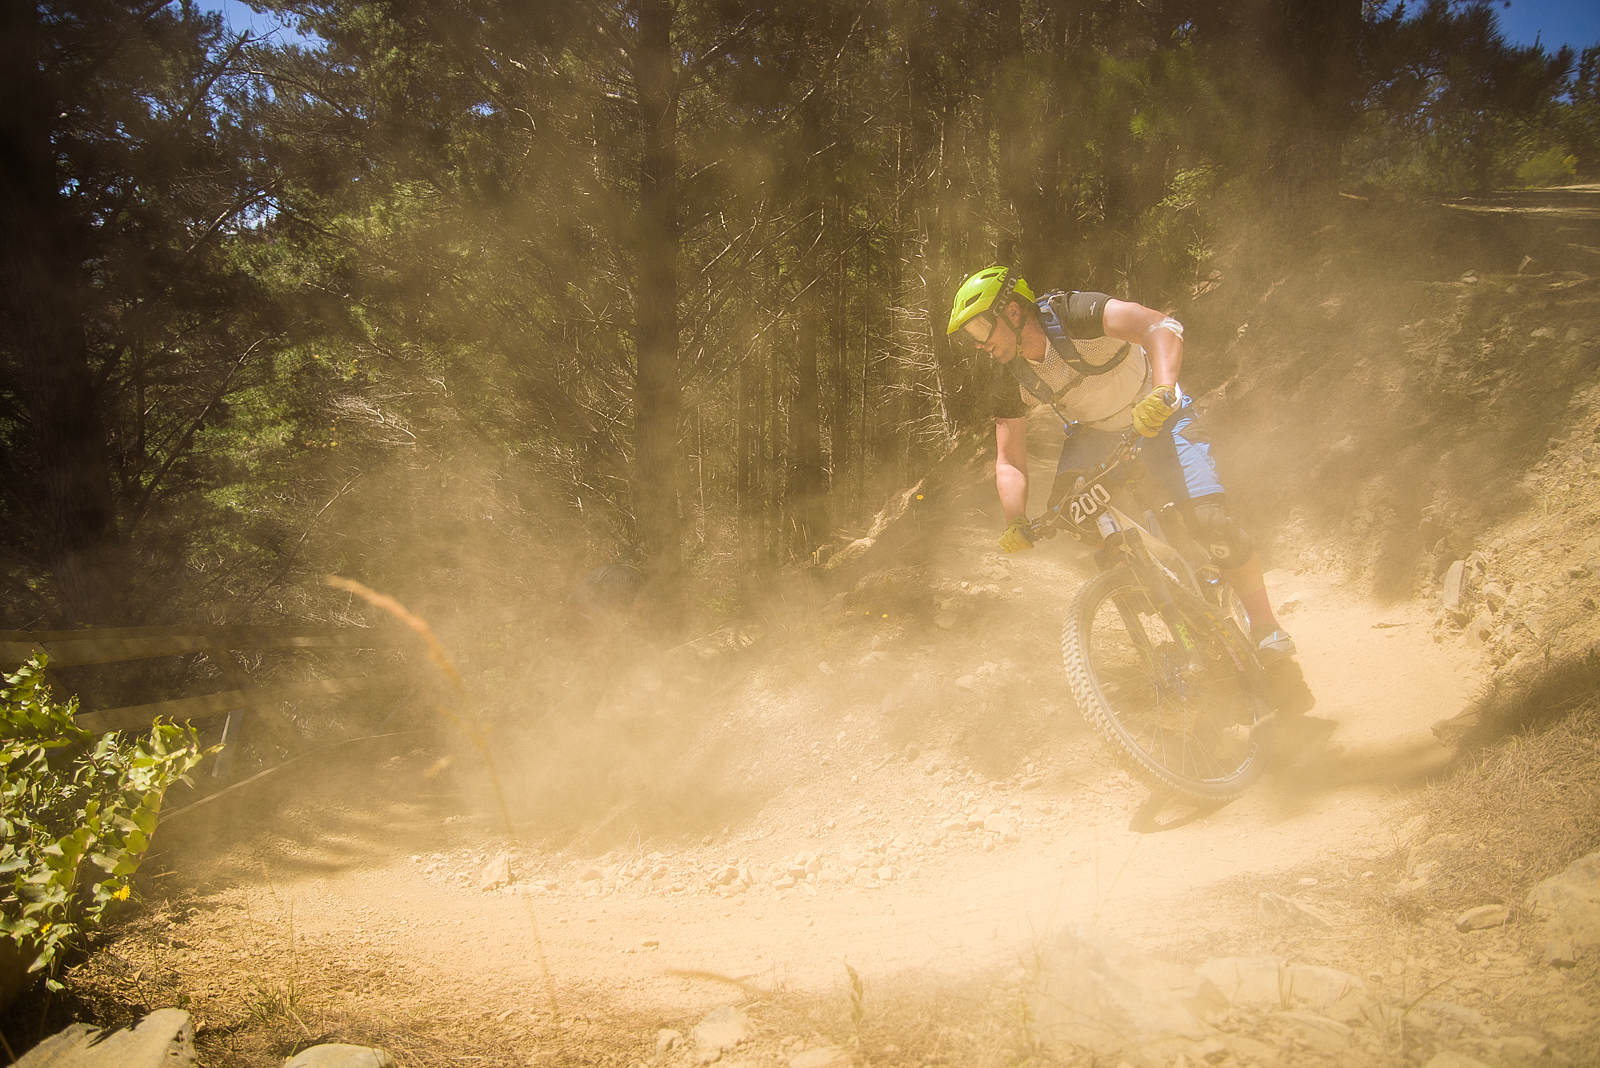 Dusty trails, you were well aware you were catching another rider.Image: Digby Shaw